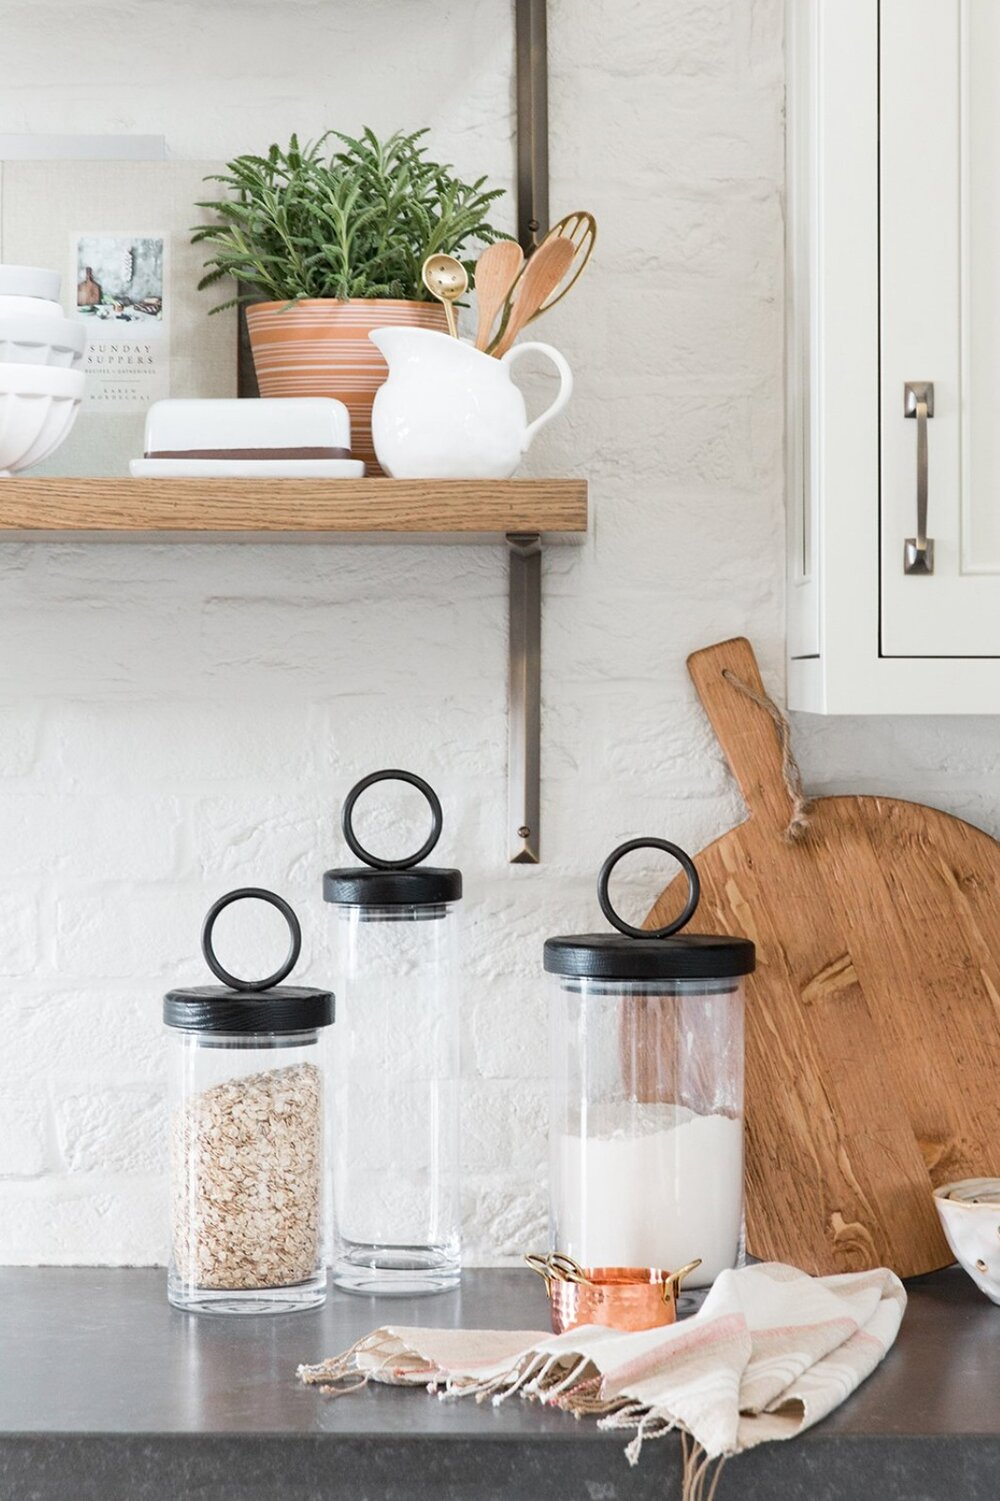 5+Kitchen+Essentials+To+Stock+Up+On+Before+The+Holidays